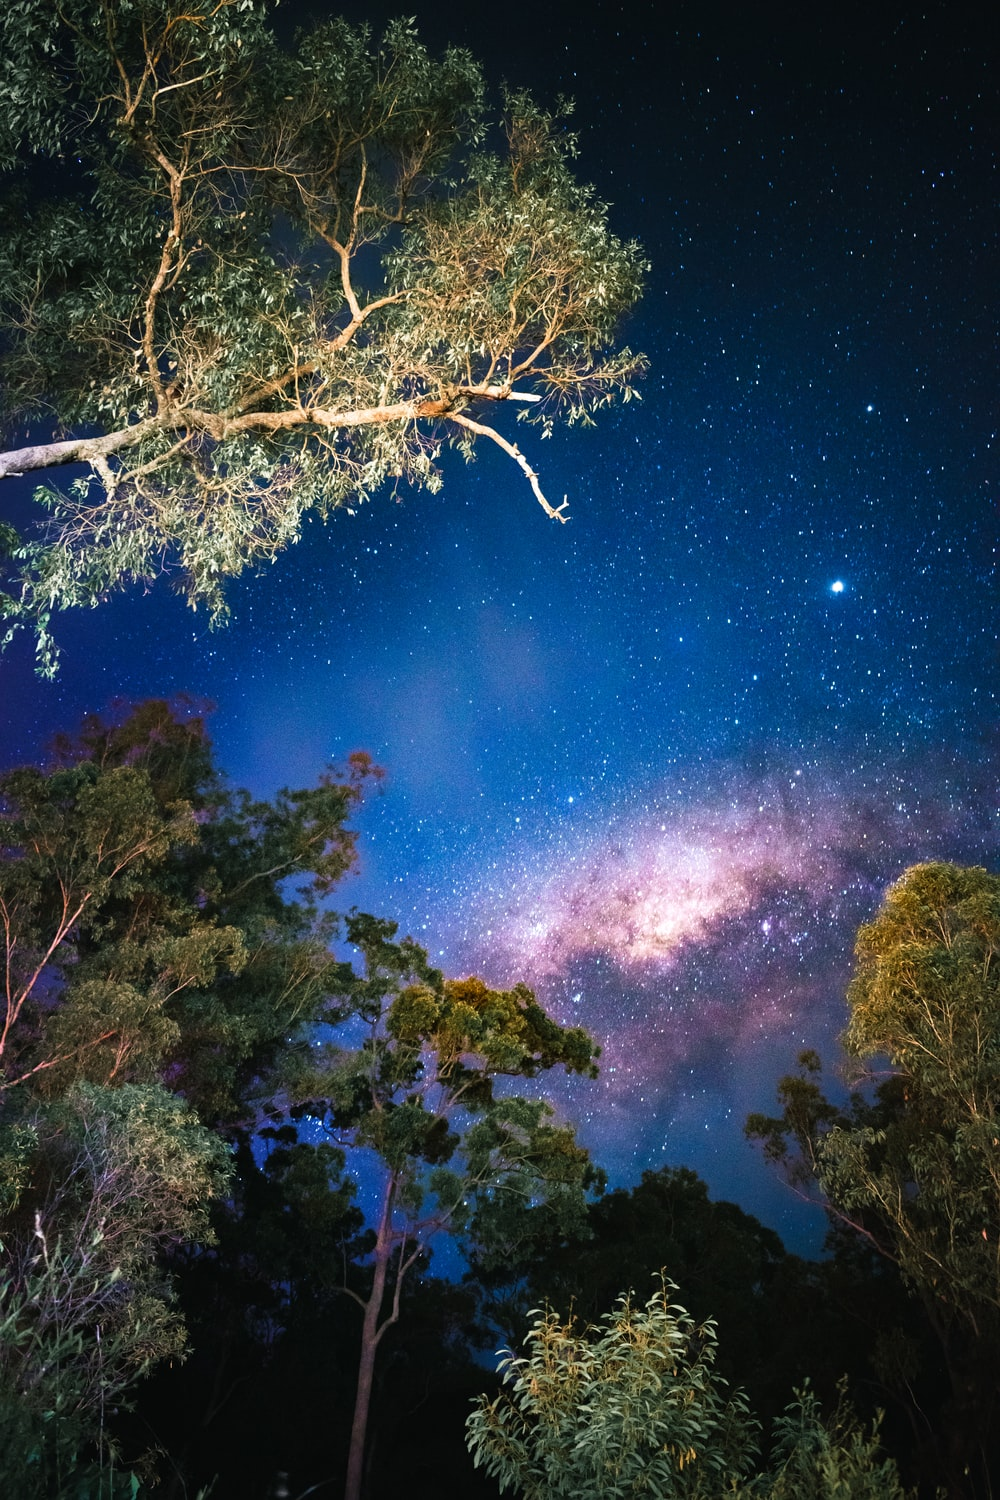 green trees under blue sky with stars during night time